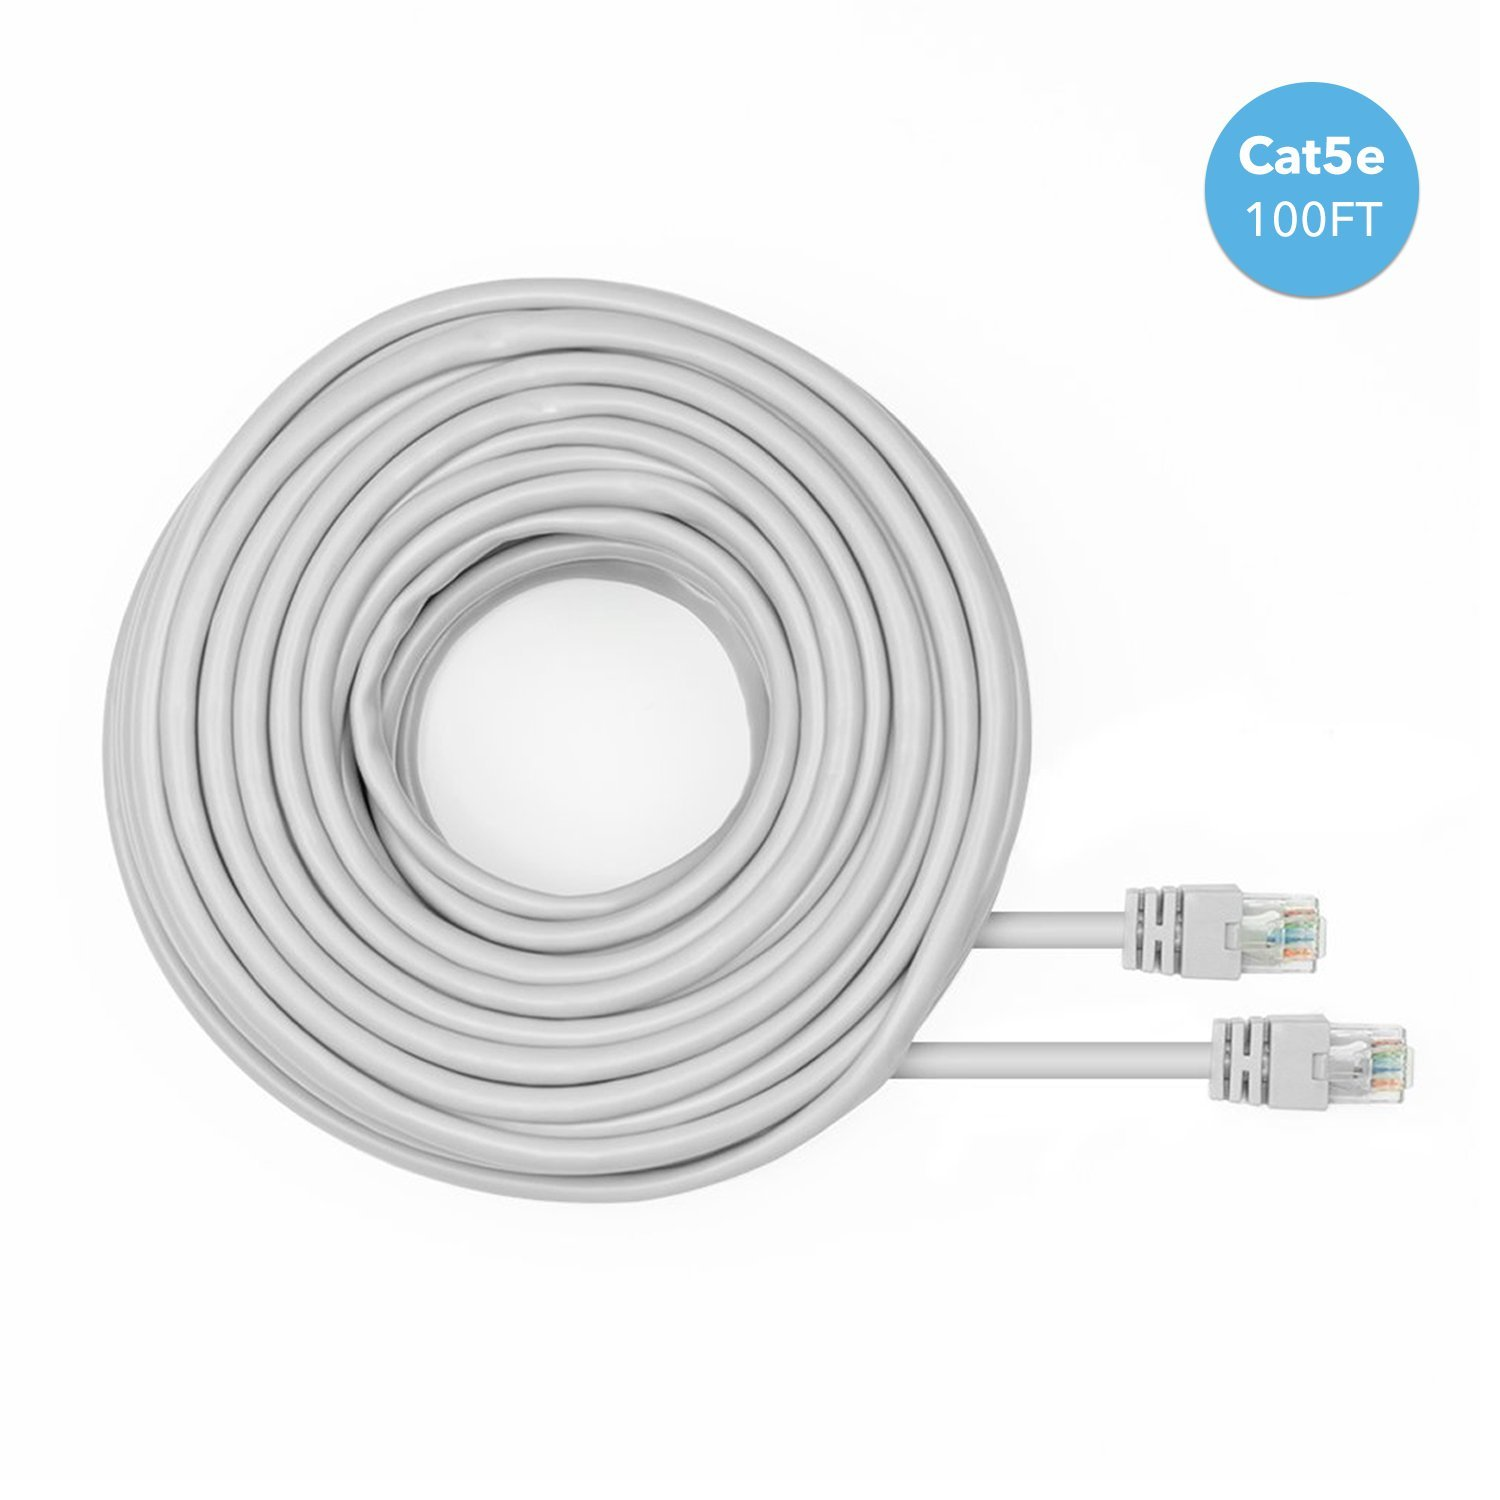 Amcrest Cat5e Cable 100ft Ethernet Cable Internet High Speed Network Cable for POE Security Cameras, Smart TV, PS4, Xbox One, Router, Laptop, Computer, Home (CAT5ECABLE100) by Amcrest